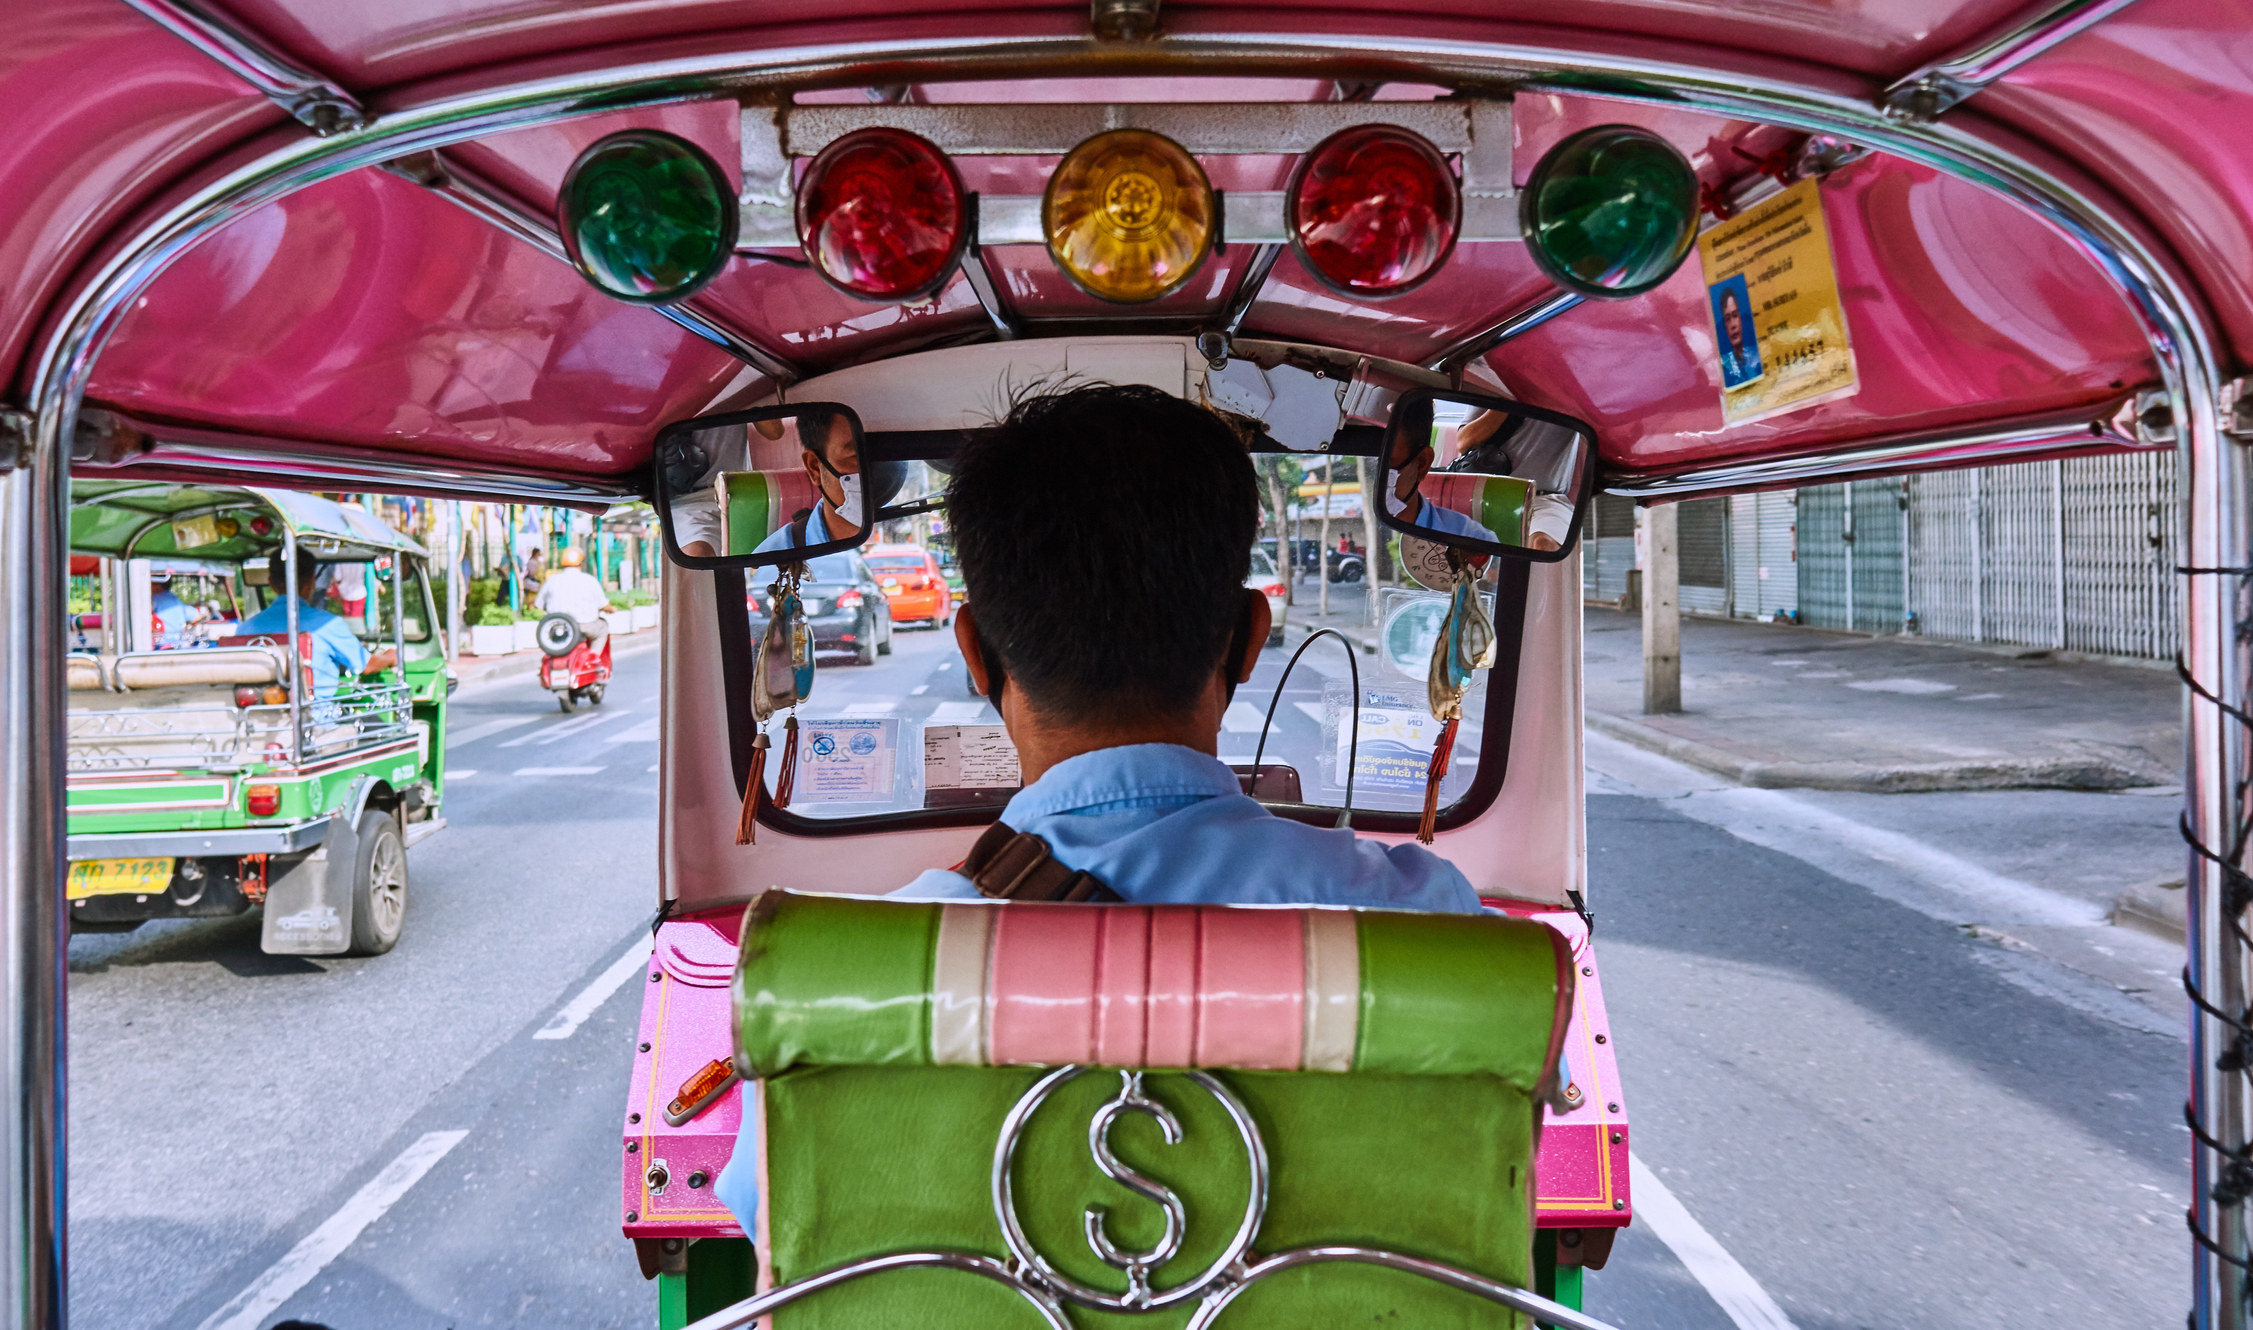 The view from the back of a Tuk Tuk in Bangkok.